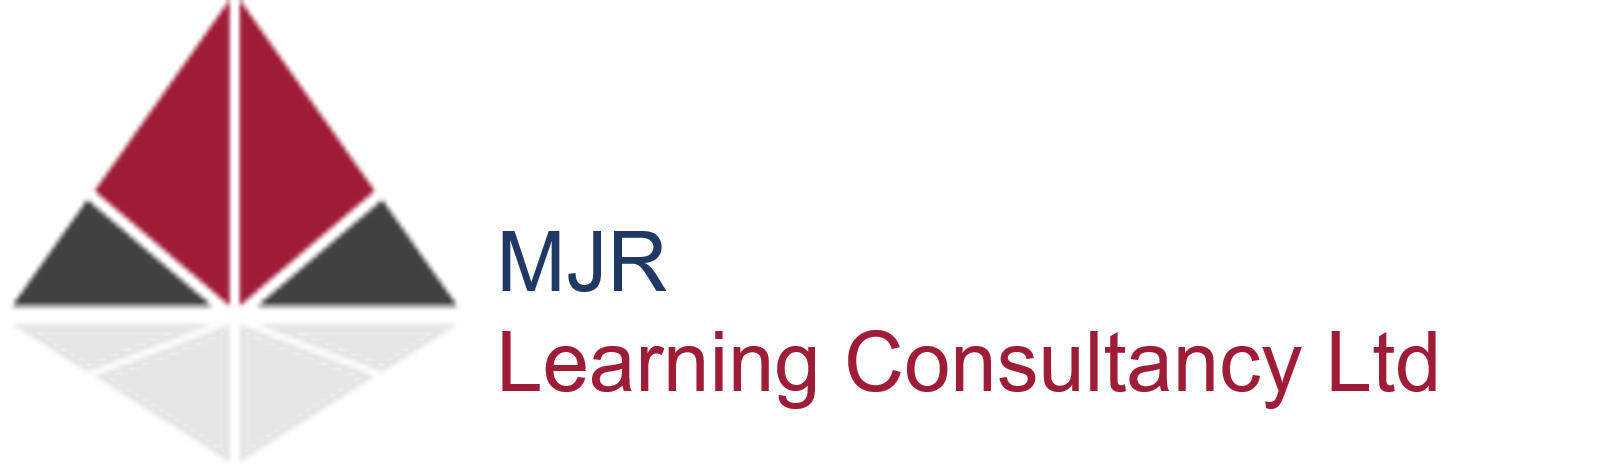 MJR Learning Consultancy Ltd